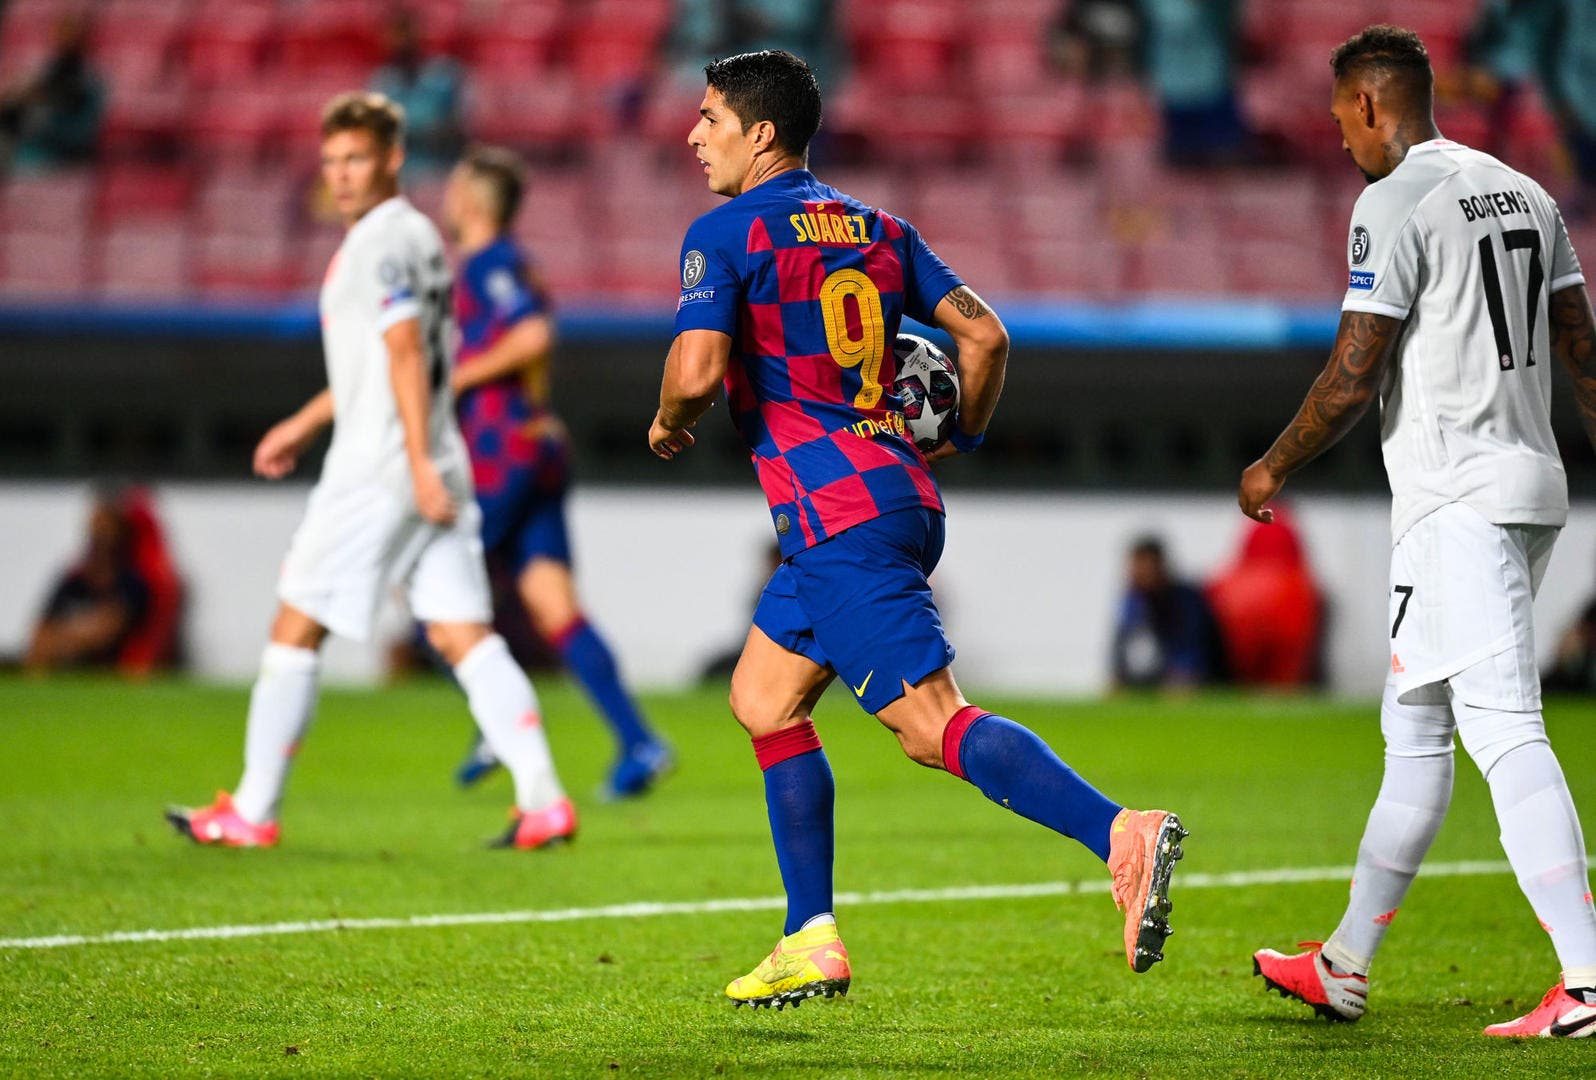 Esp: Annoyed by Barça, Suarez wants to sort it out man to man